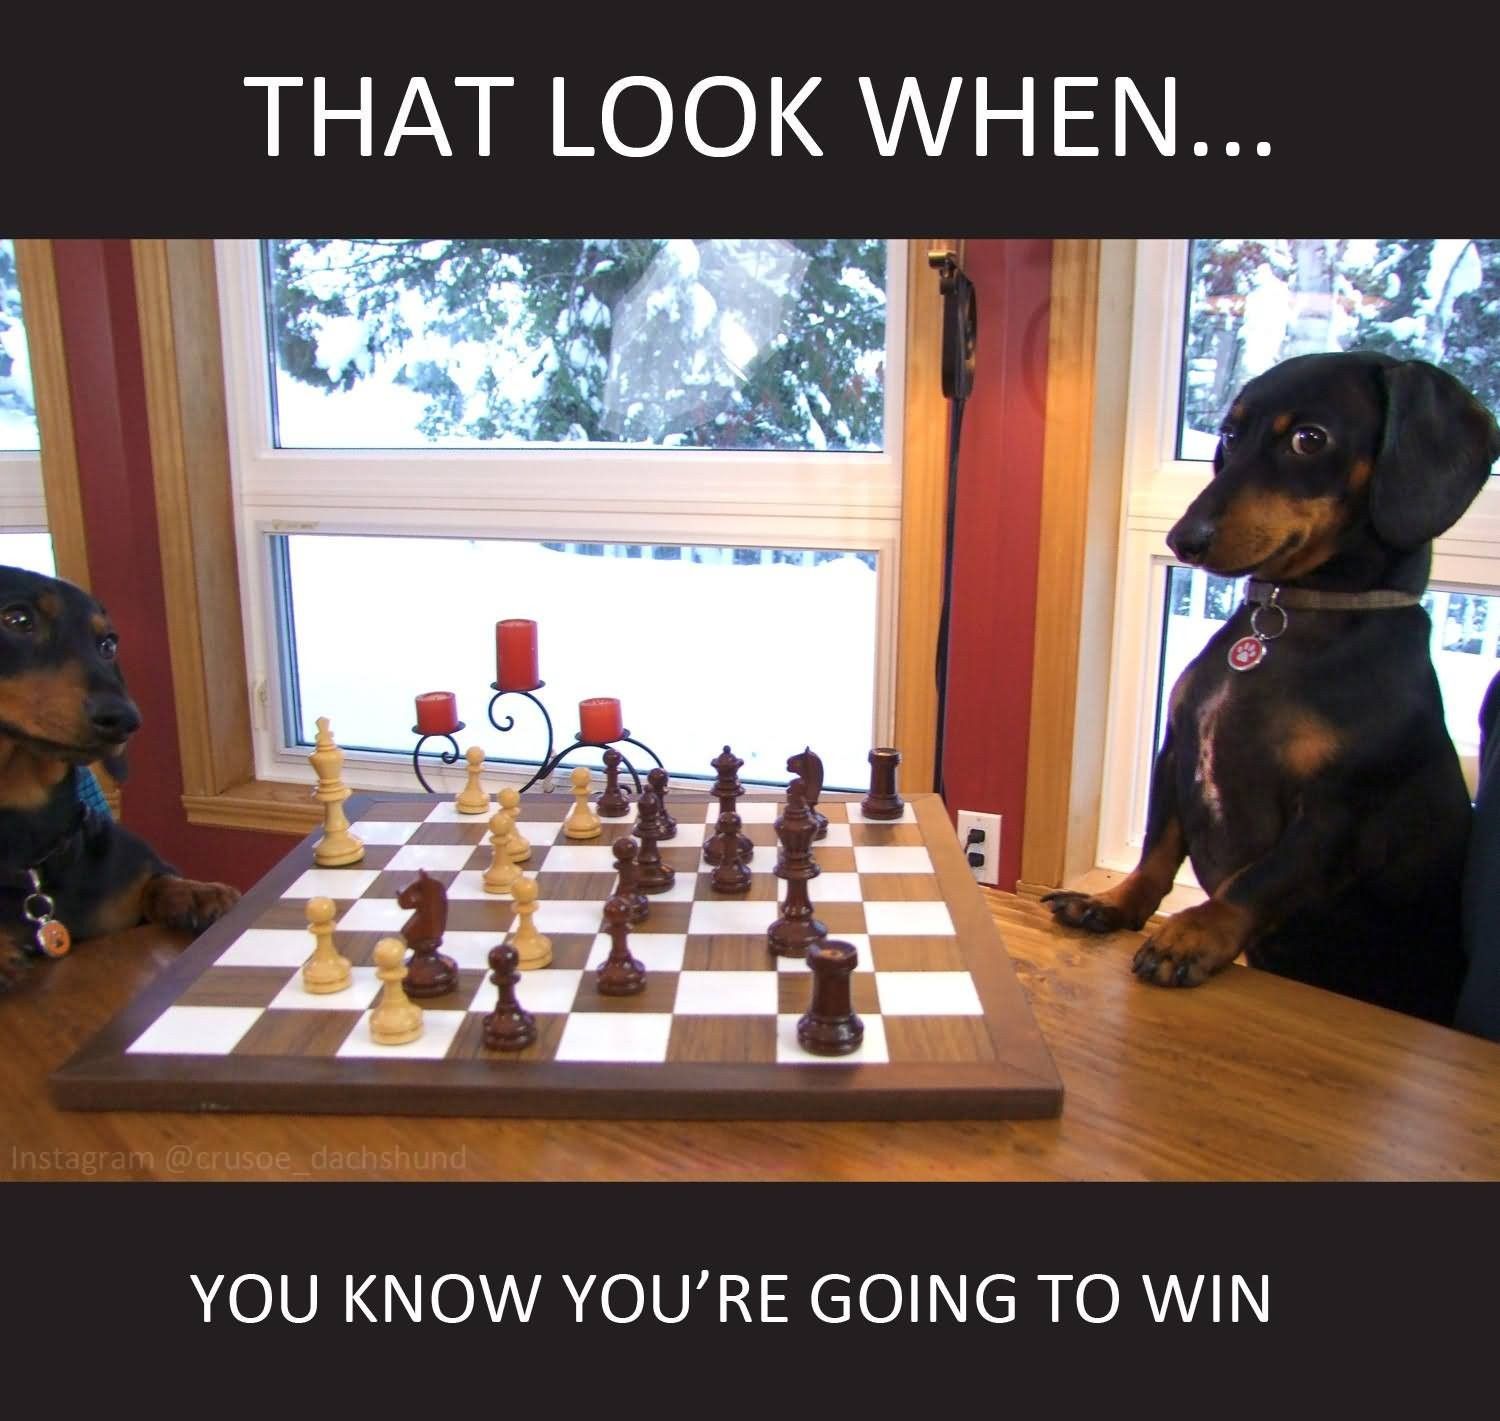 50 Very Funny Chess Meme Photos And Pictures That Will Make You Laugh